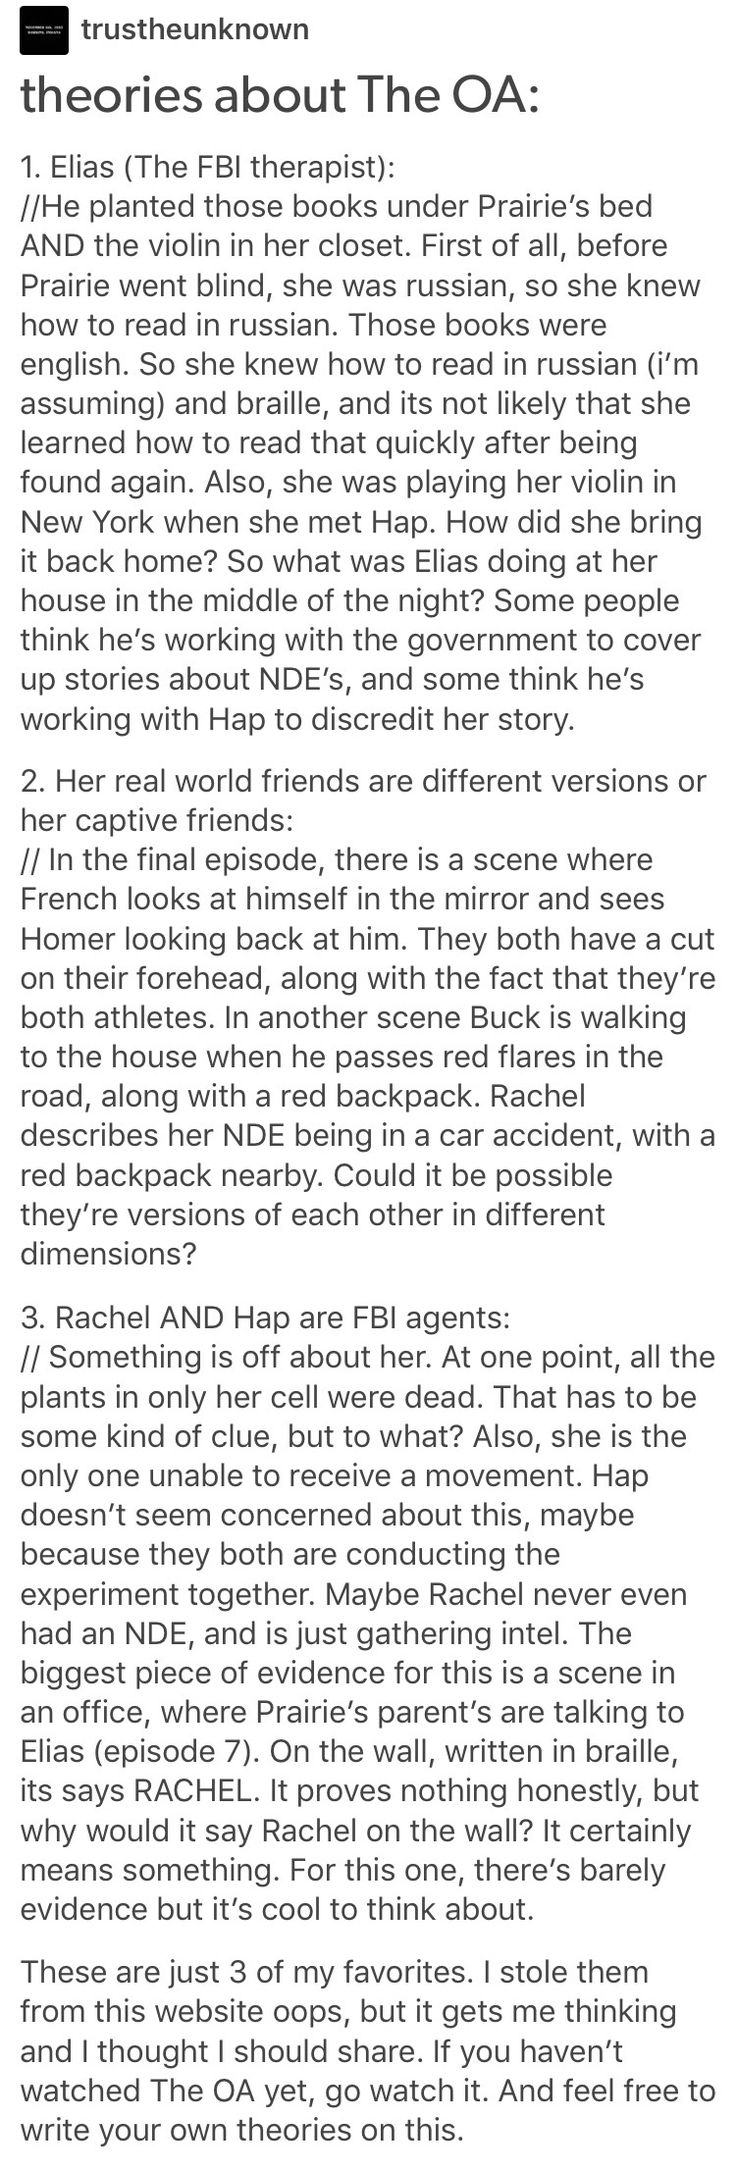 The OA theories